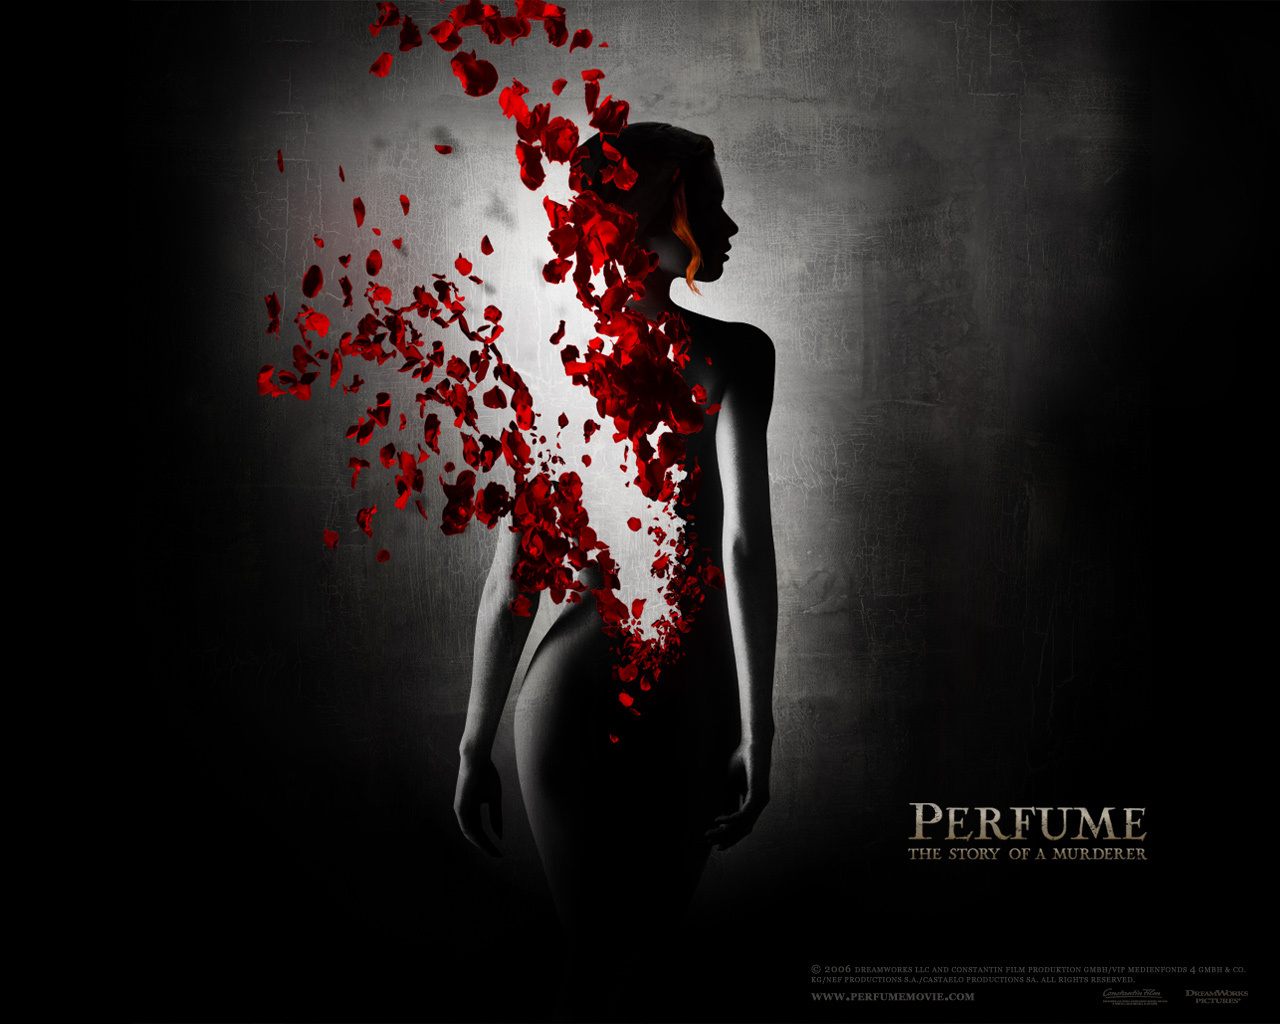 Perfume wall - Perfume - The Story of a Murderer Wallpaper (9403529